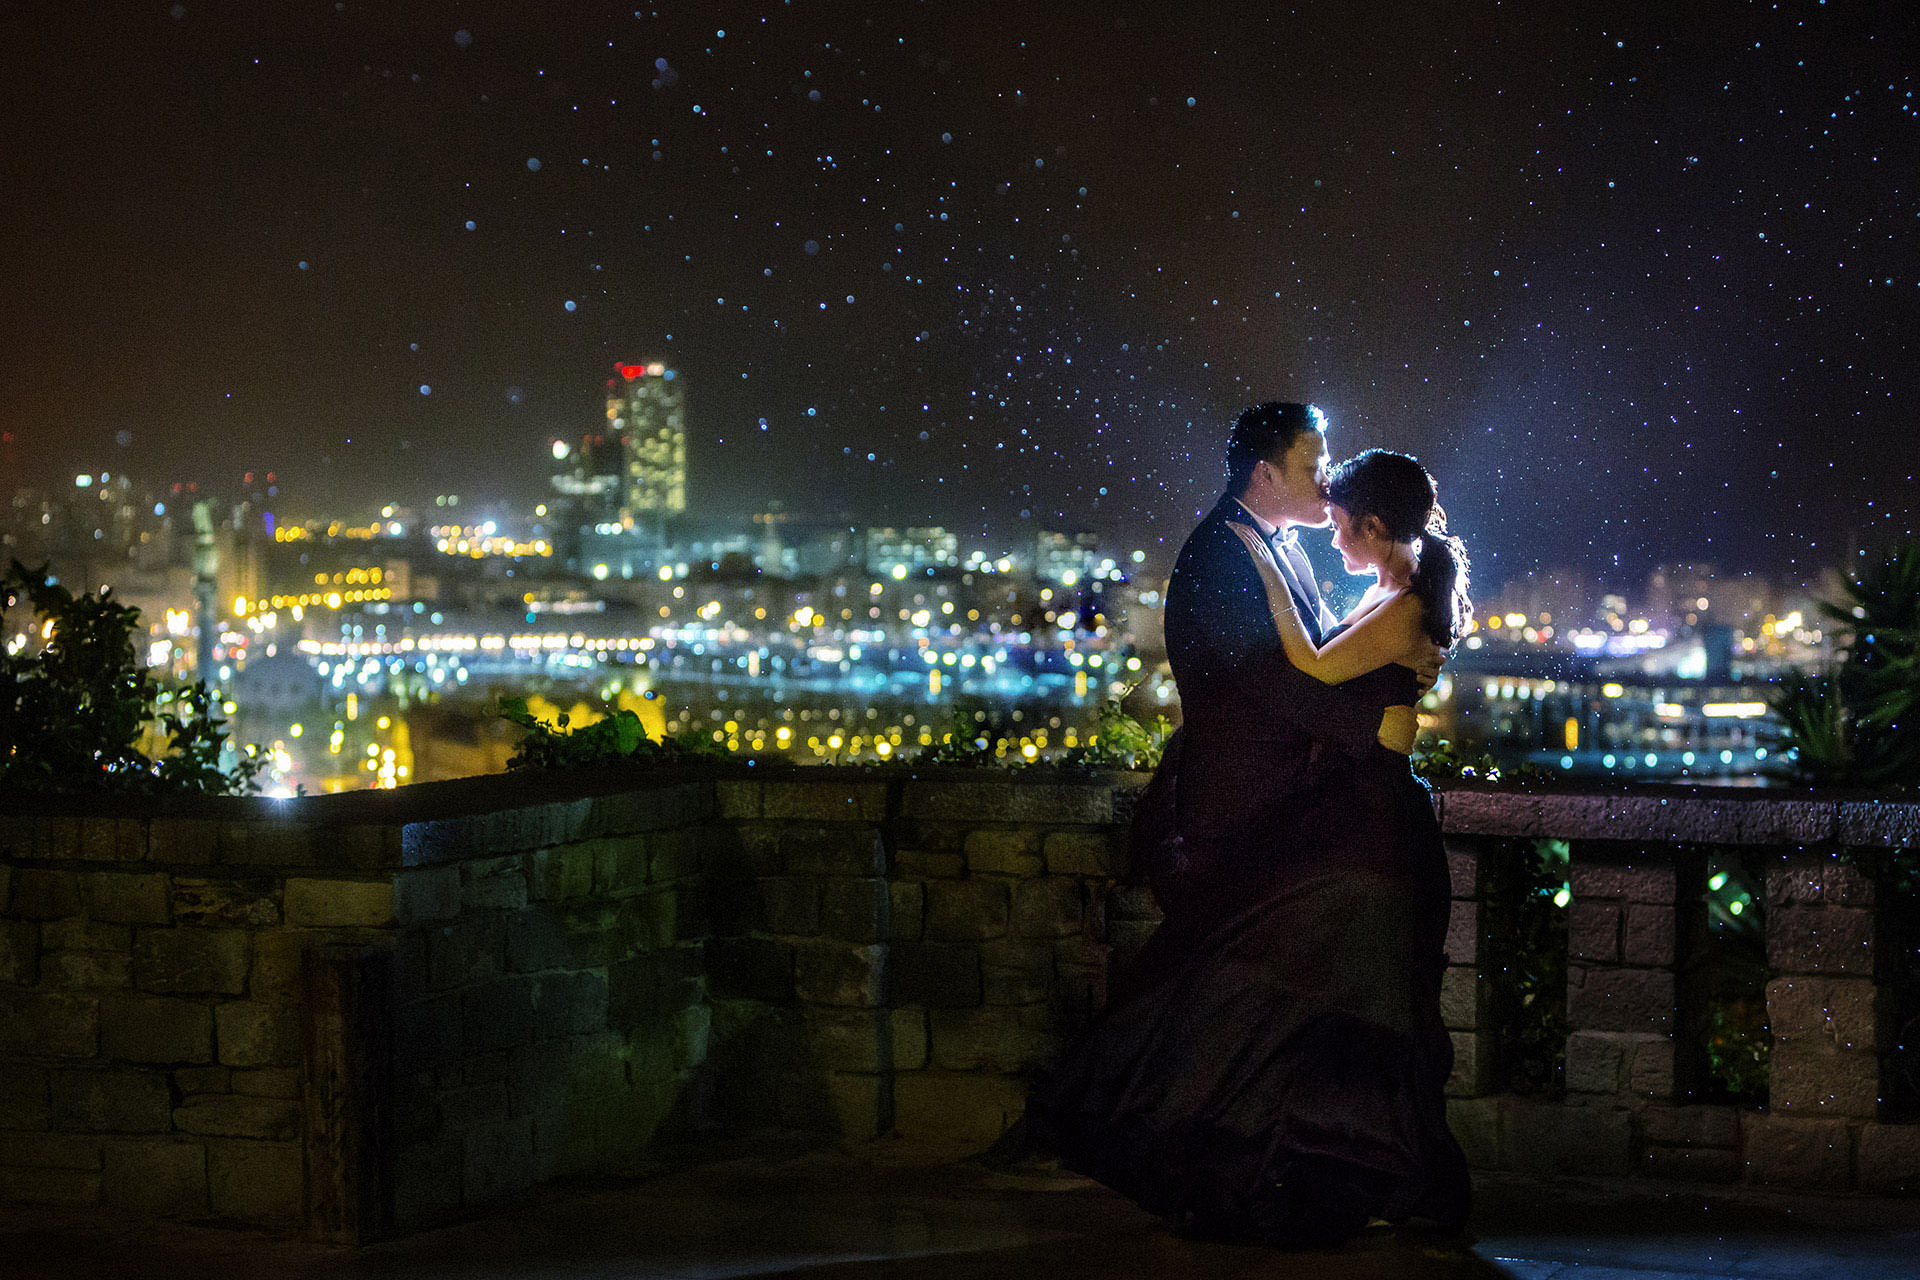 barcelona wedding photography amazing captures